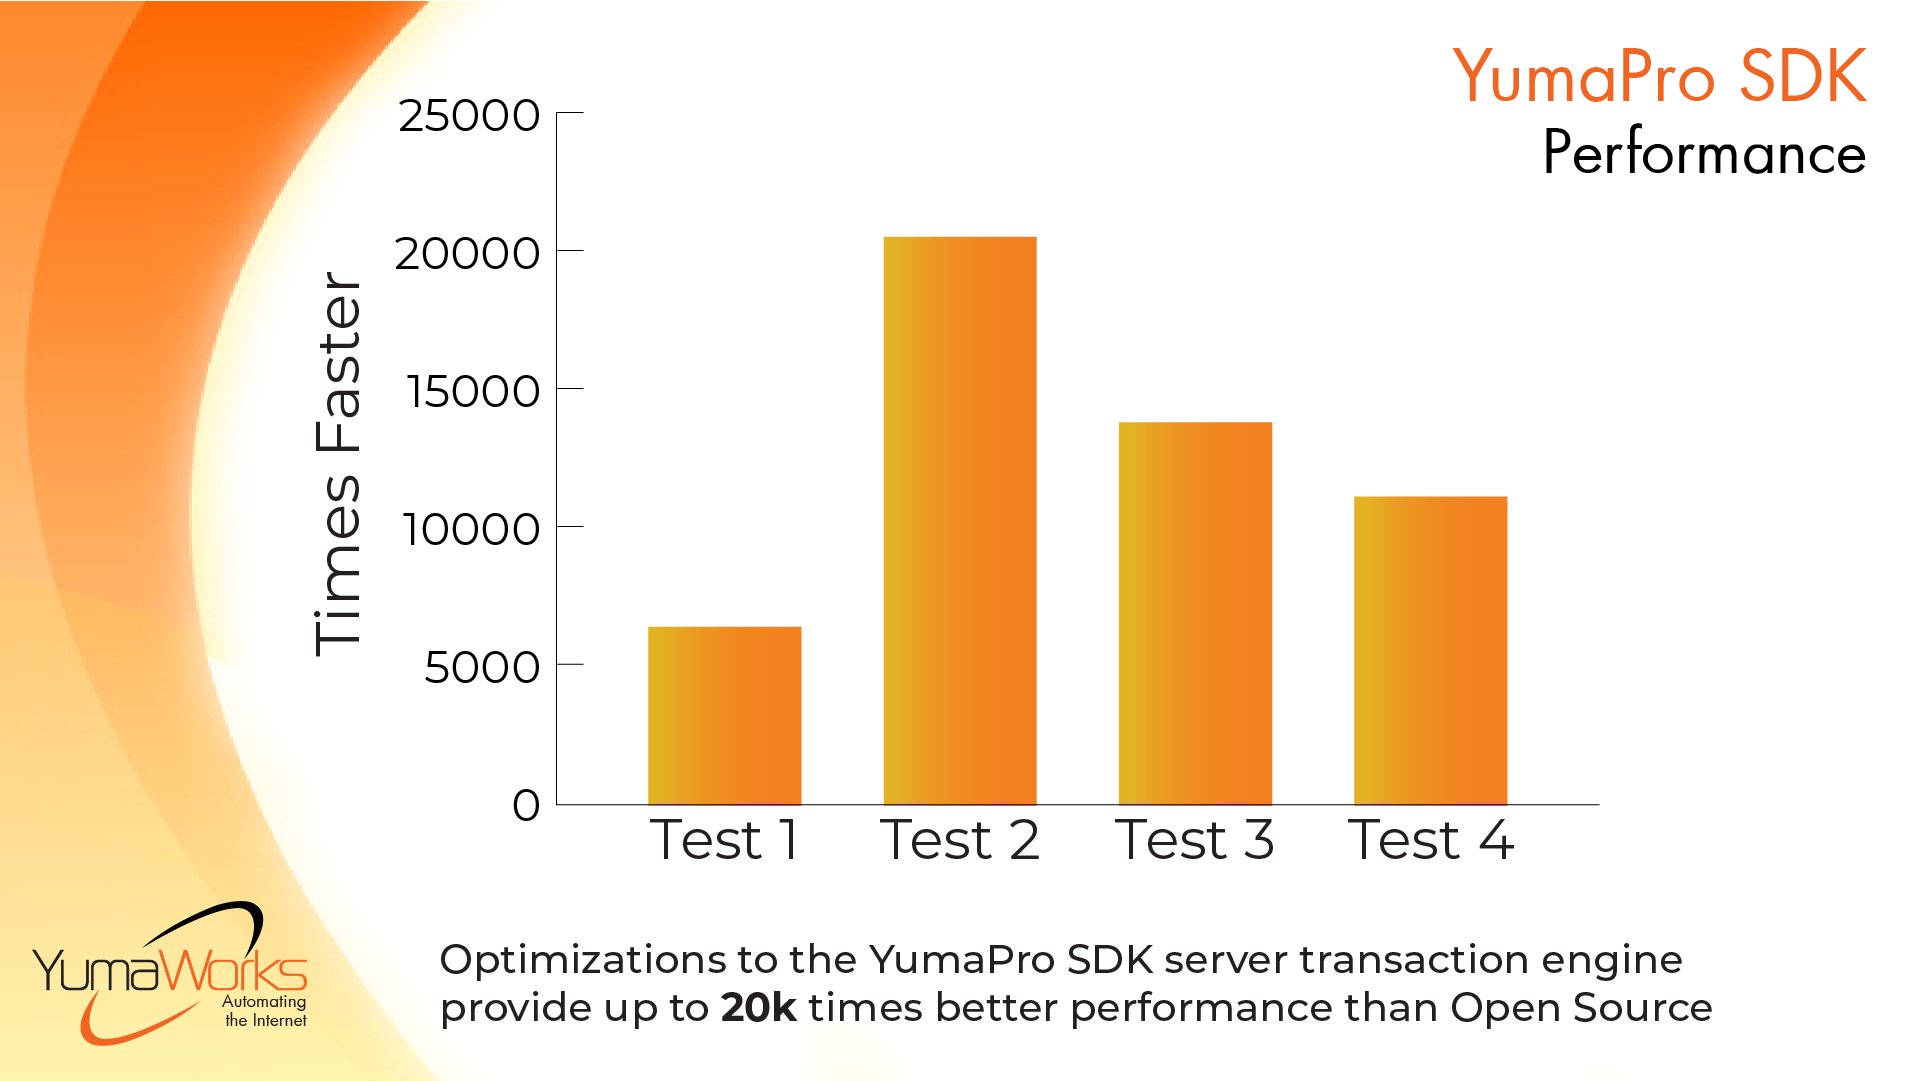 Optimizations to the YumaPro SDK transaction engine provide up to 20k times better performance than Open Source